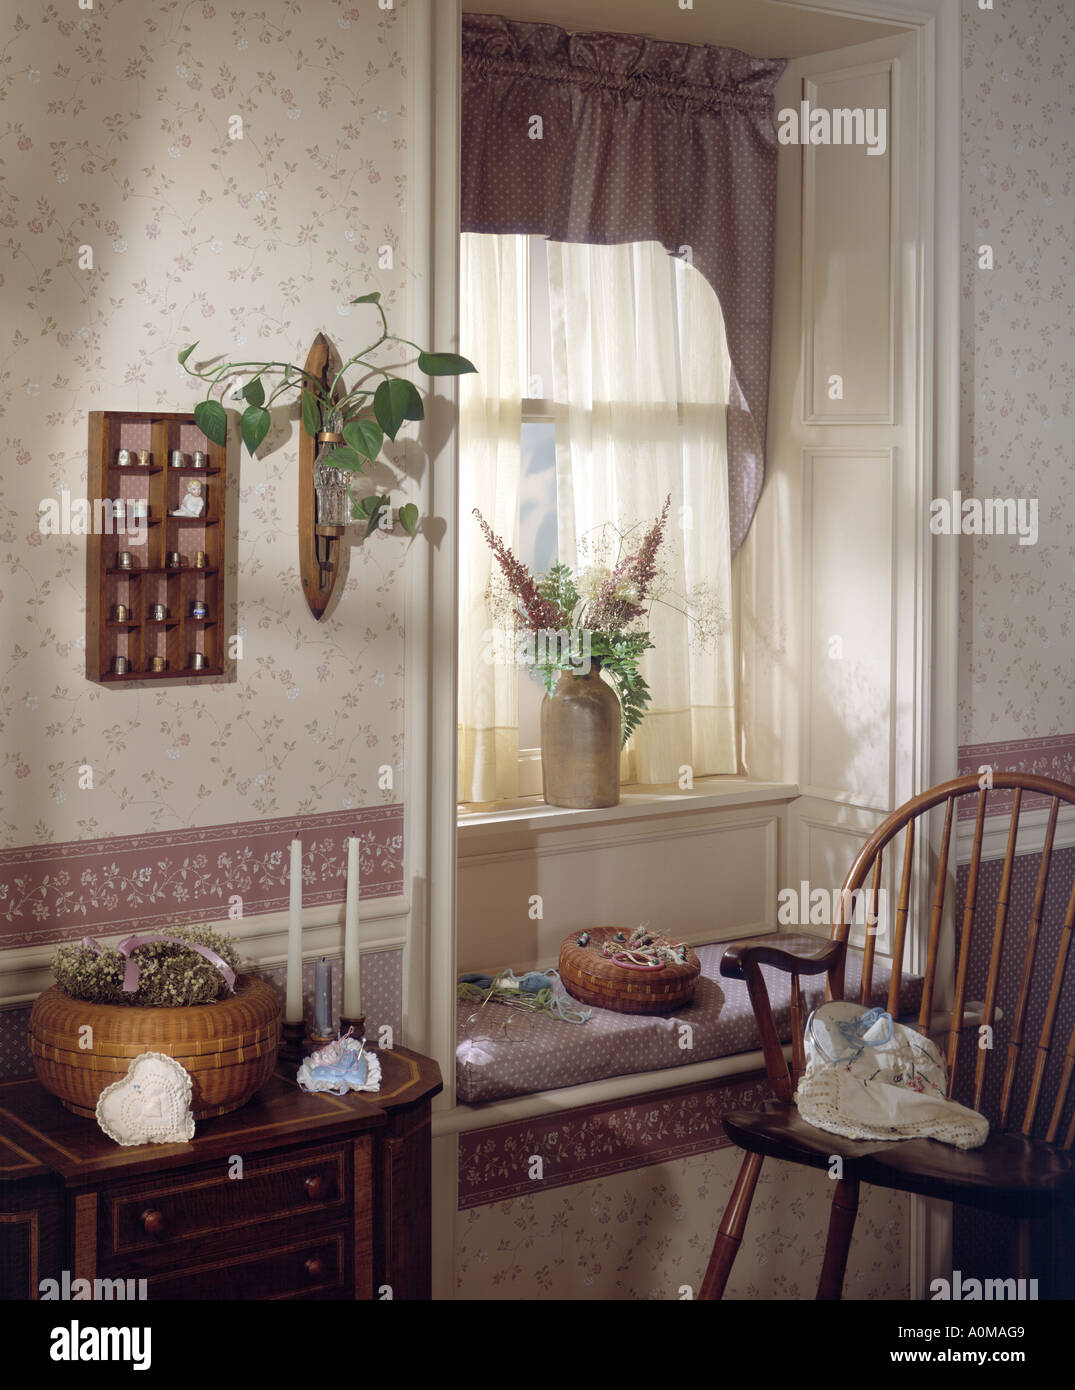 Stock Photo   Room Interior Window Alcove Table Drape Antique Rocker Rug  Sewing Box Objecrs Pillow Thread Window Seat Alcove Candles Thimble C